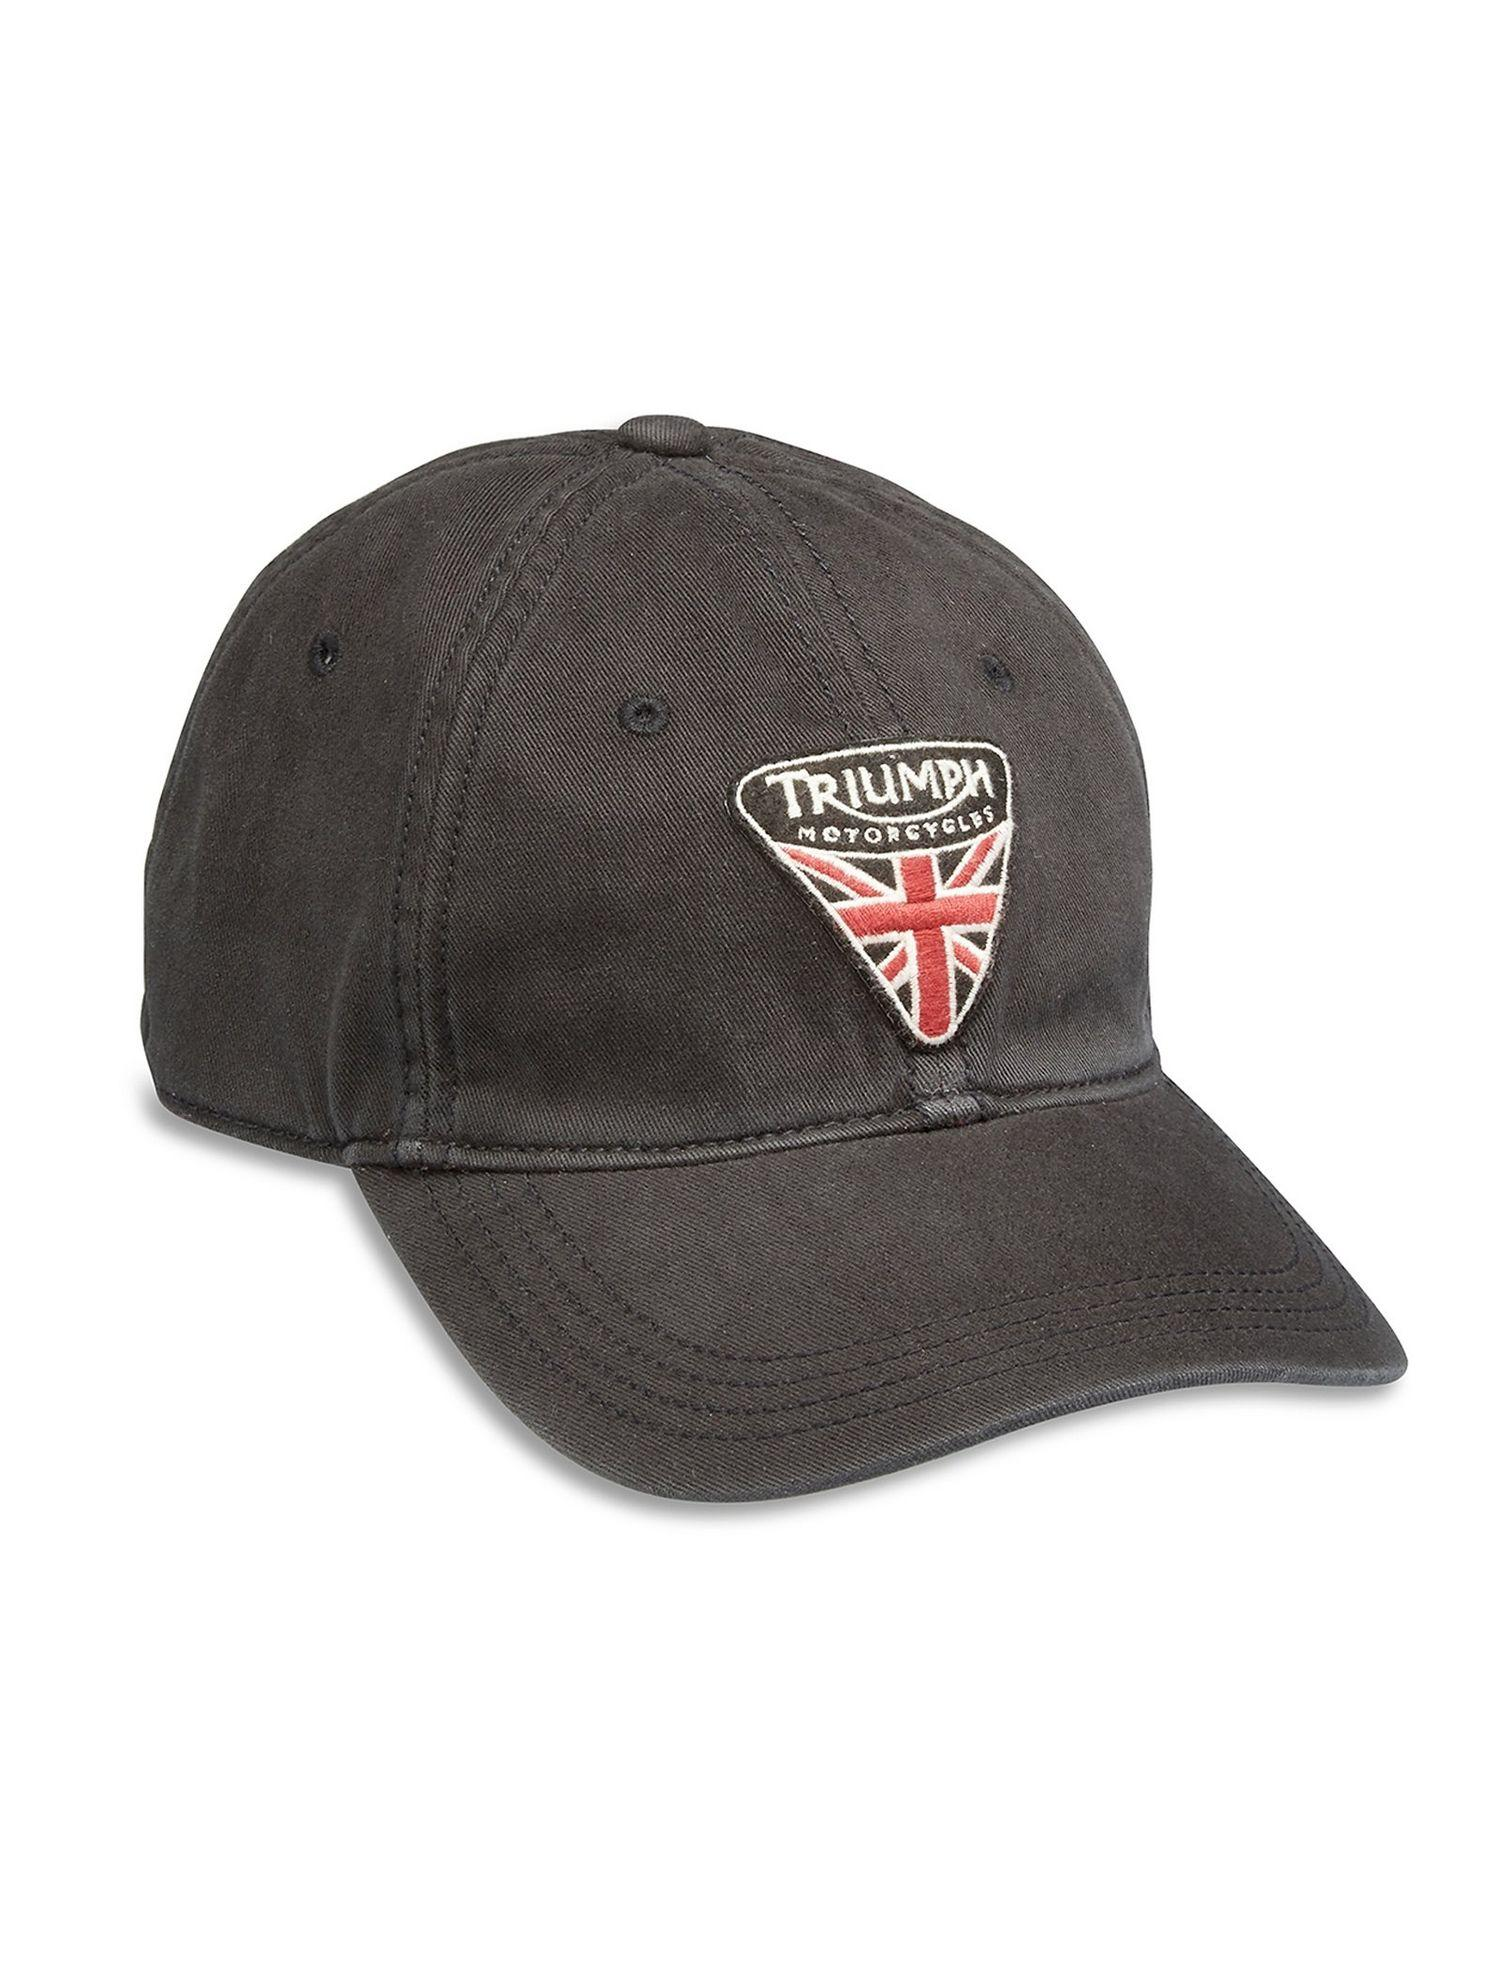 024dacc45f9 Lyst - Lucky Brand Triumph Motorcycles Patch in Black for Men